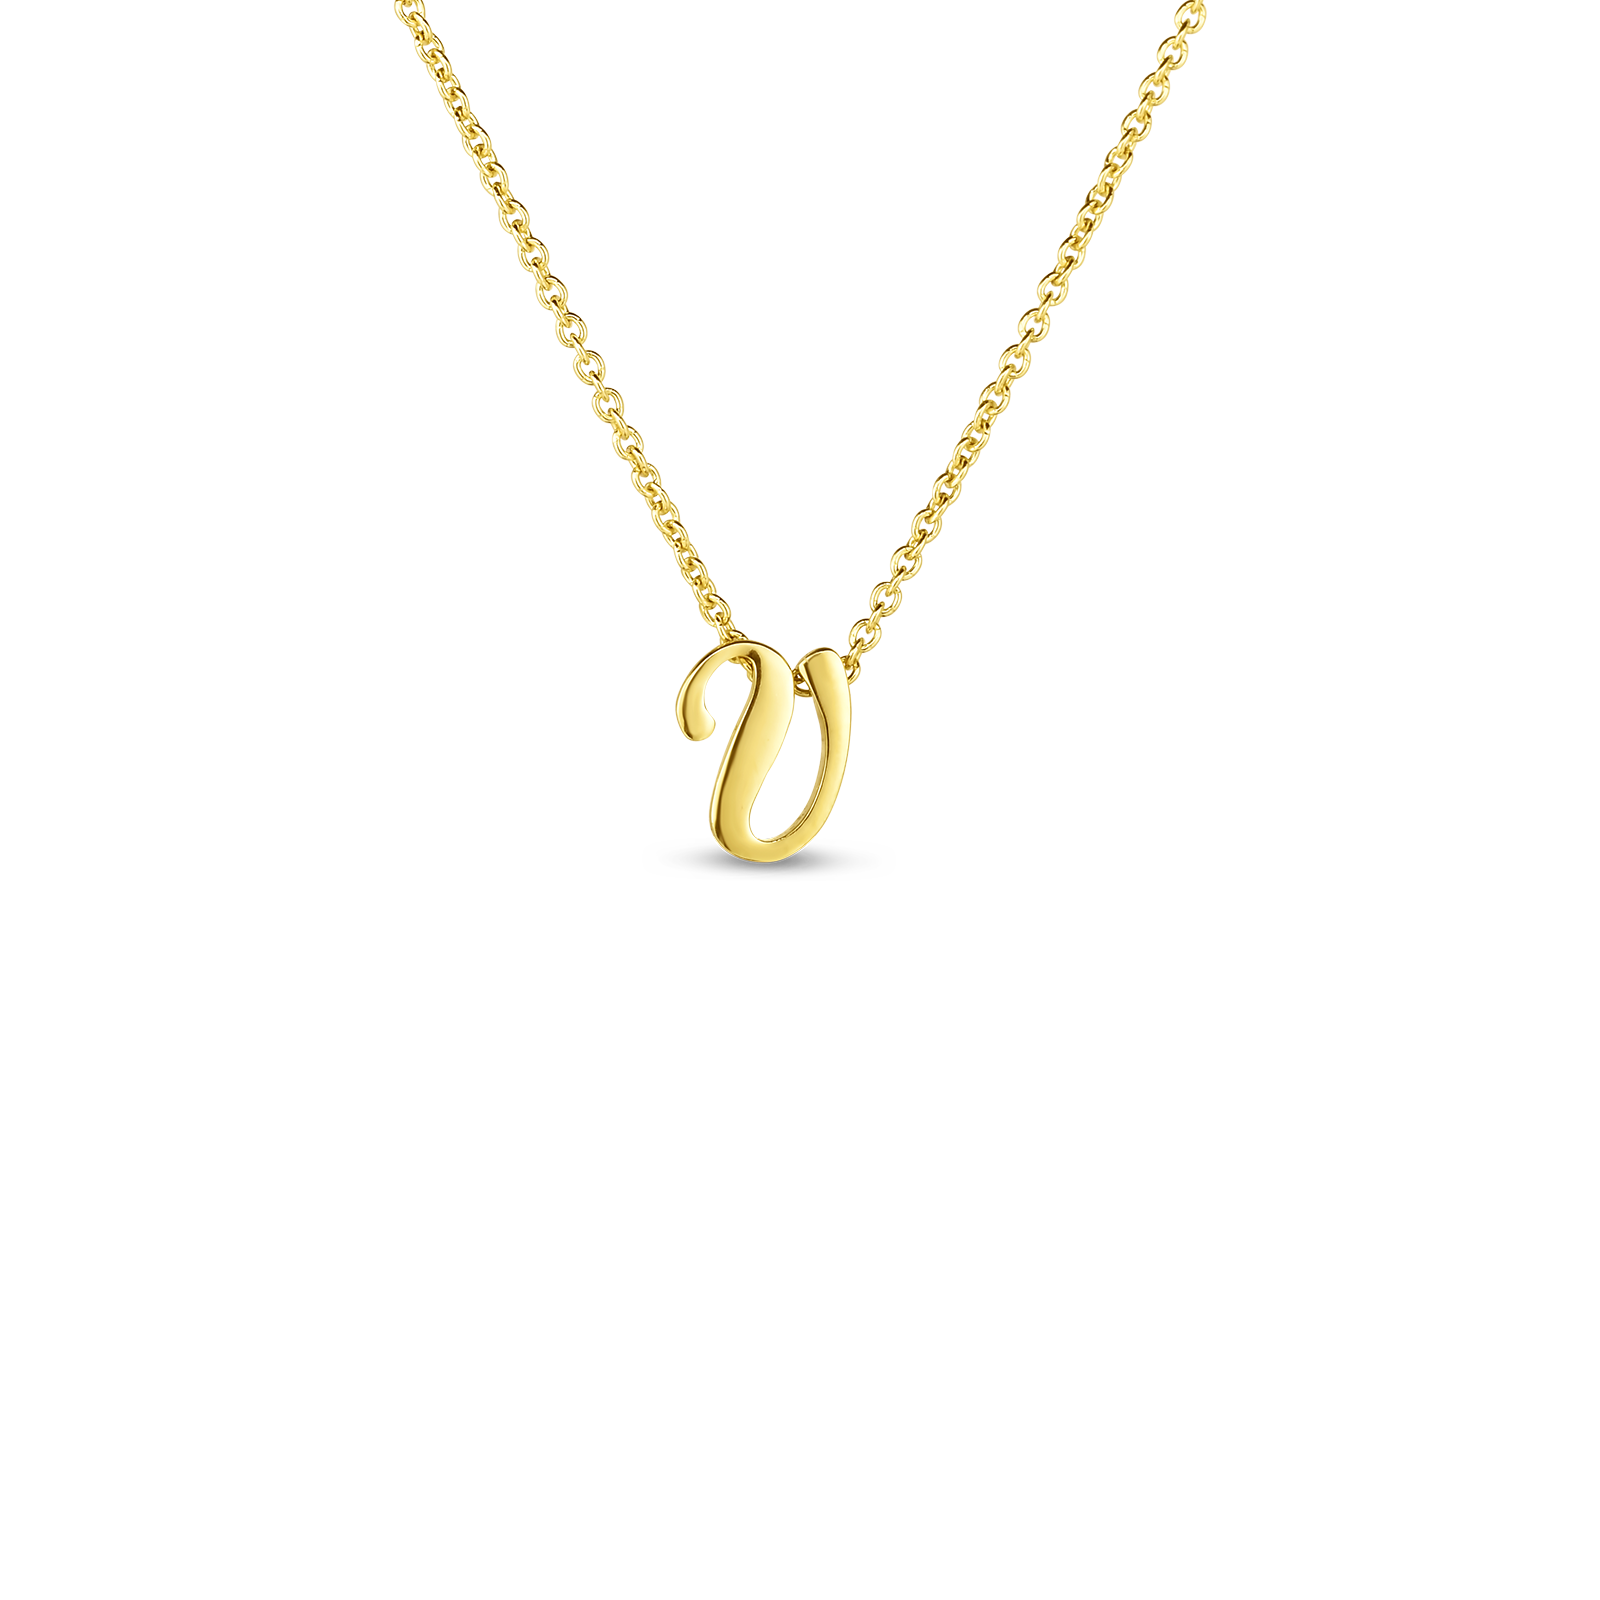 18k Small Script Initial 'V' Pendant On Chain